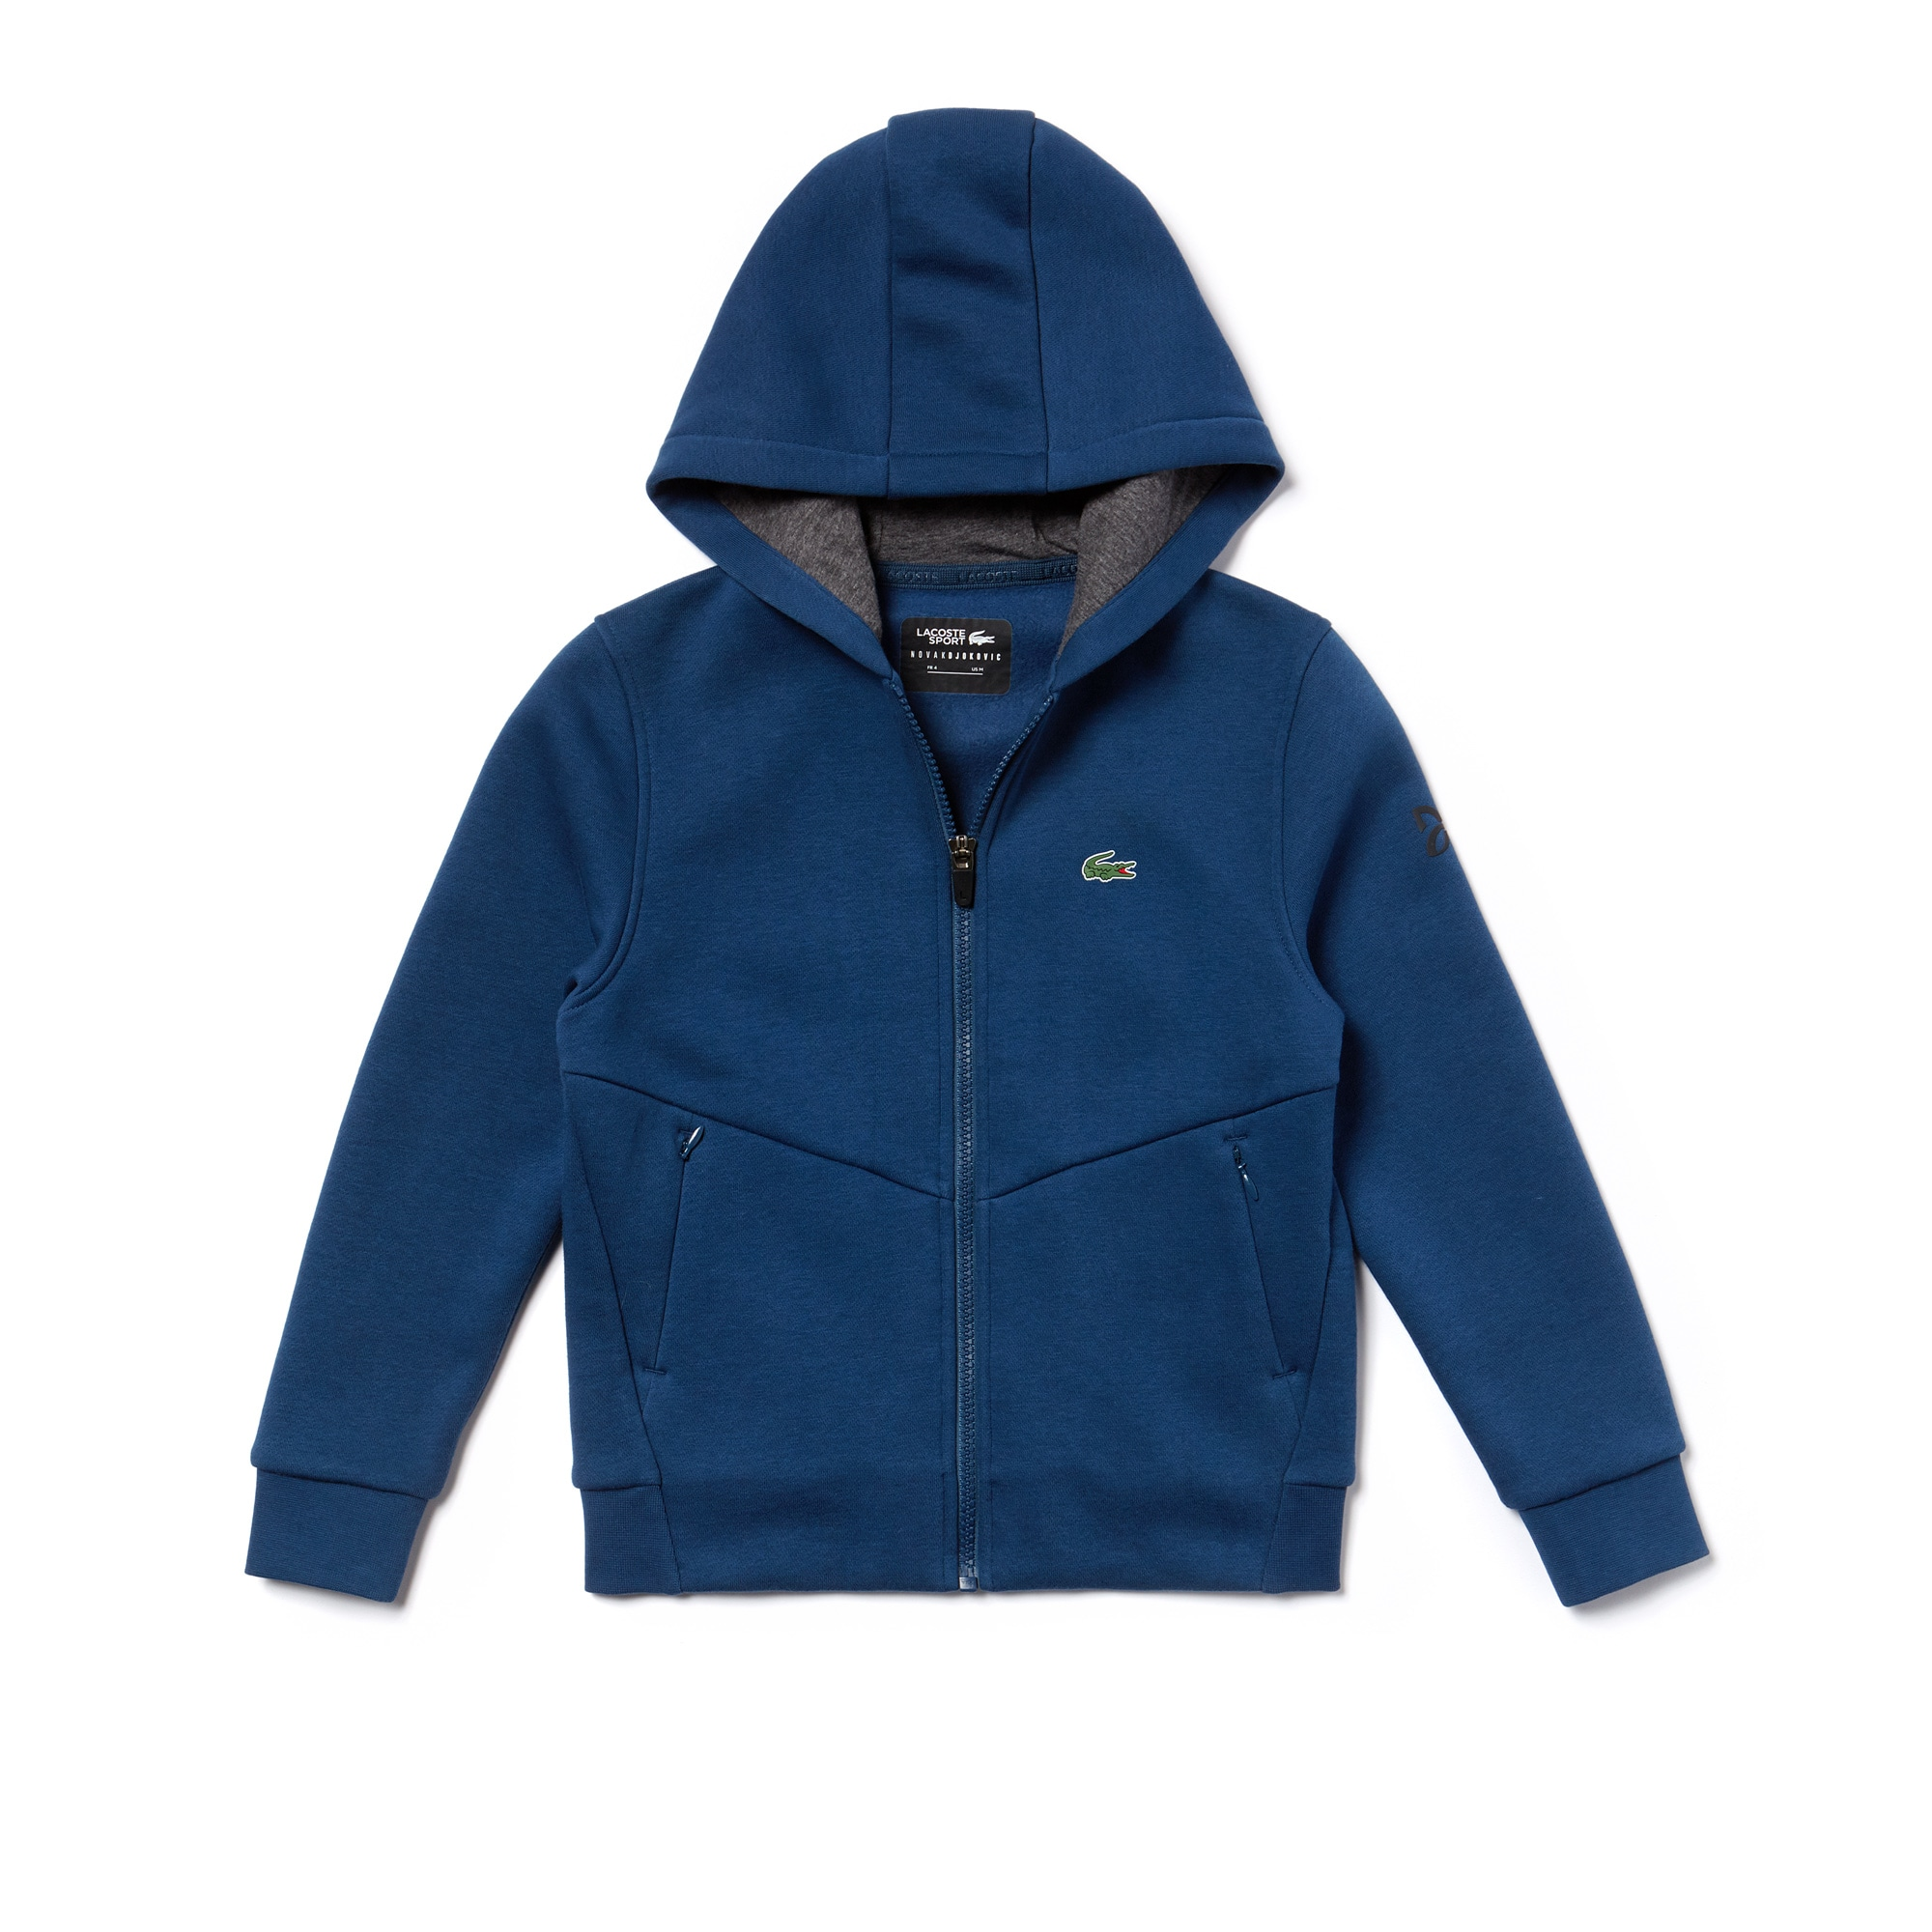 Boys' Lacoste SPORT NOVAK DJOKOVIC-OFF COURT COLLECTION Zip...